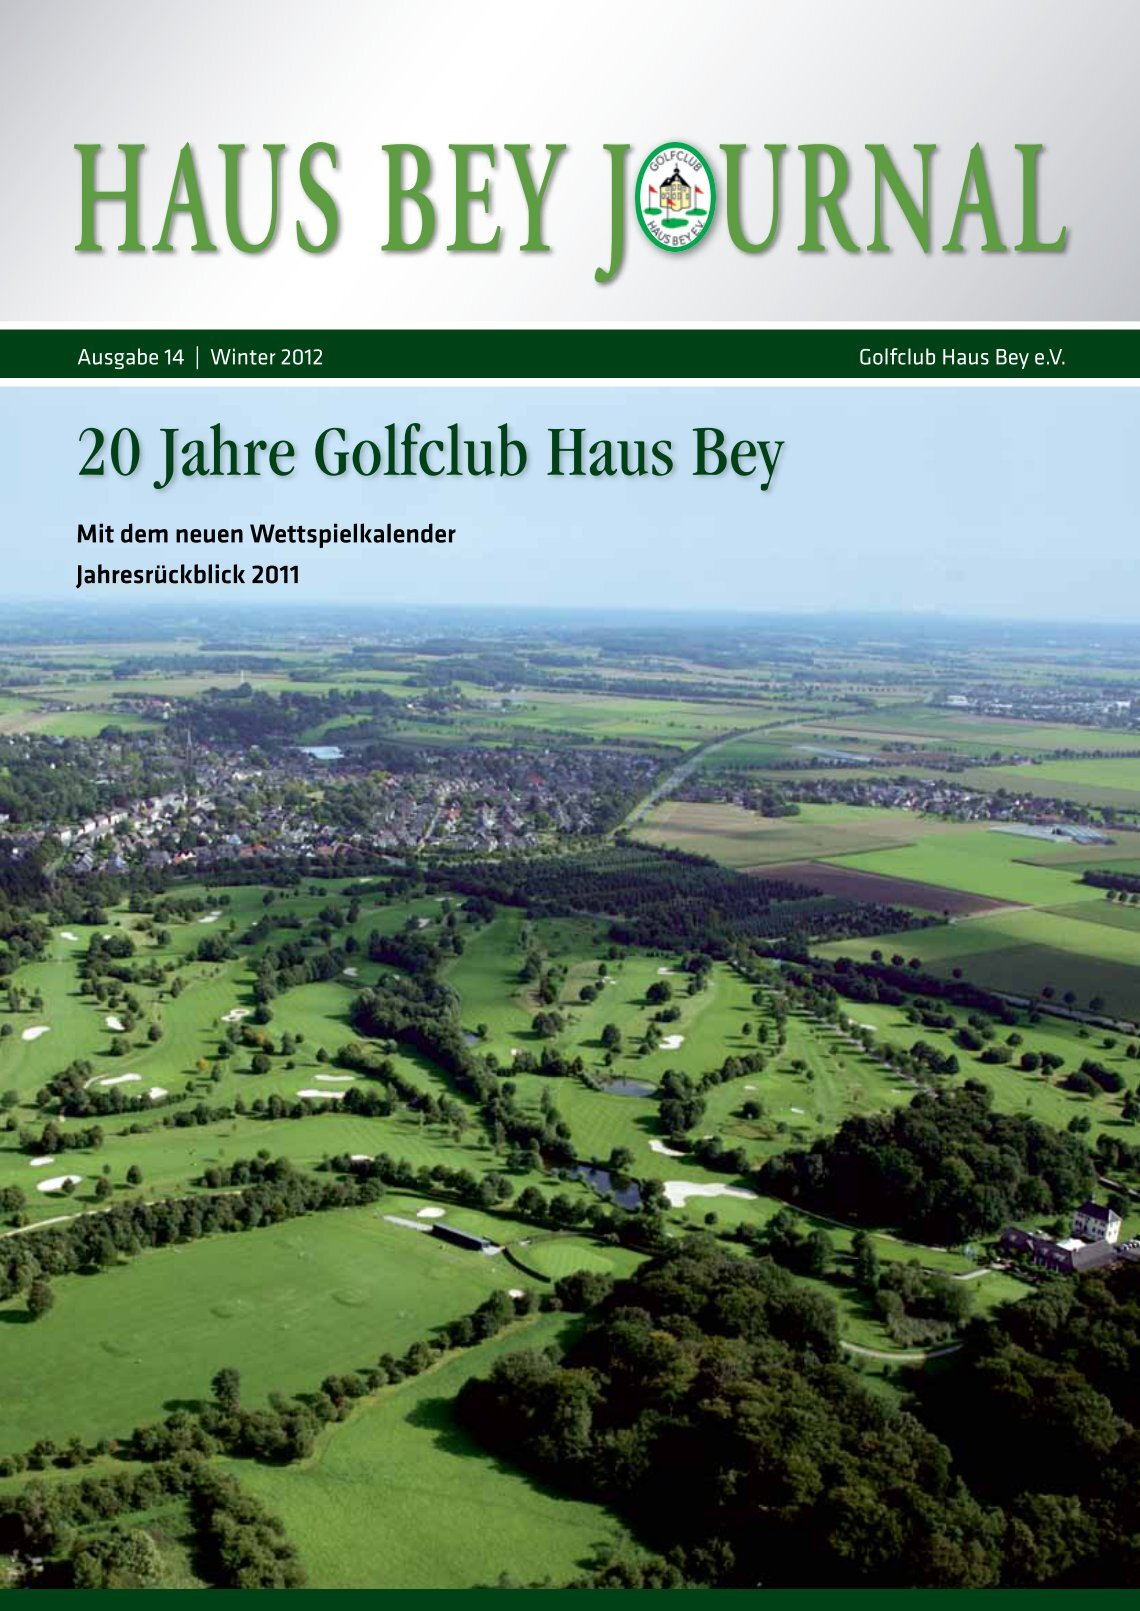 7 Free Magazines From Hausbey